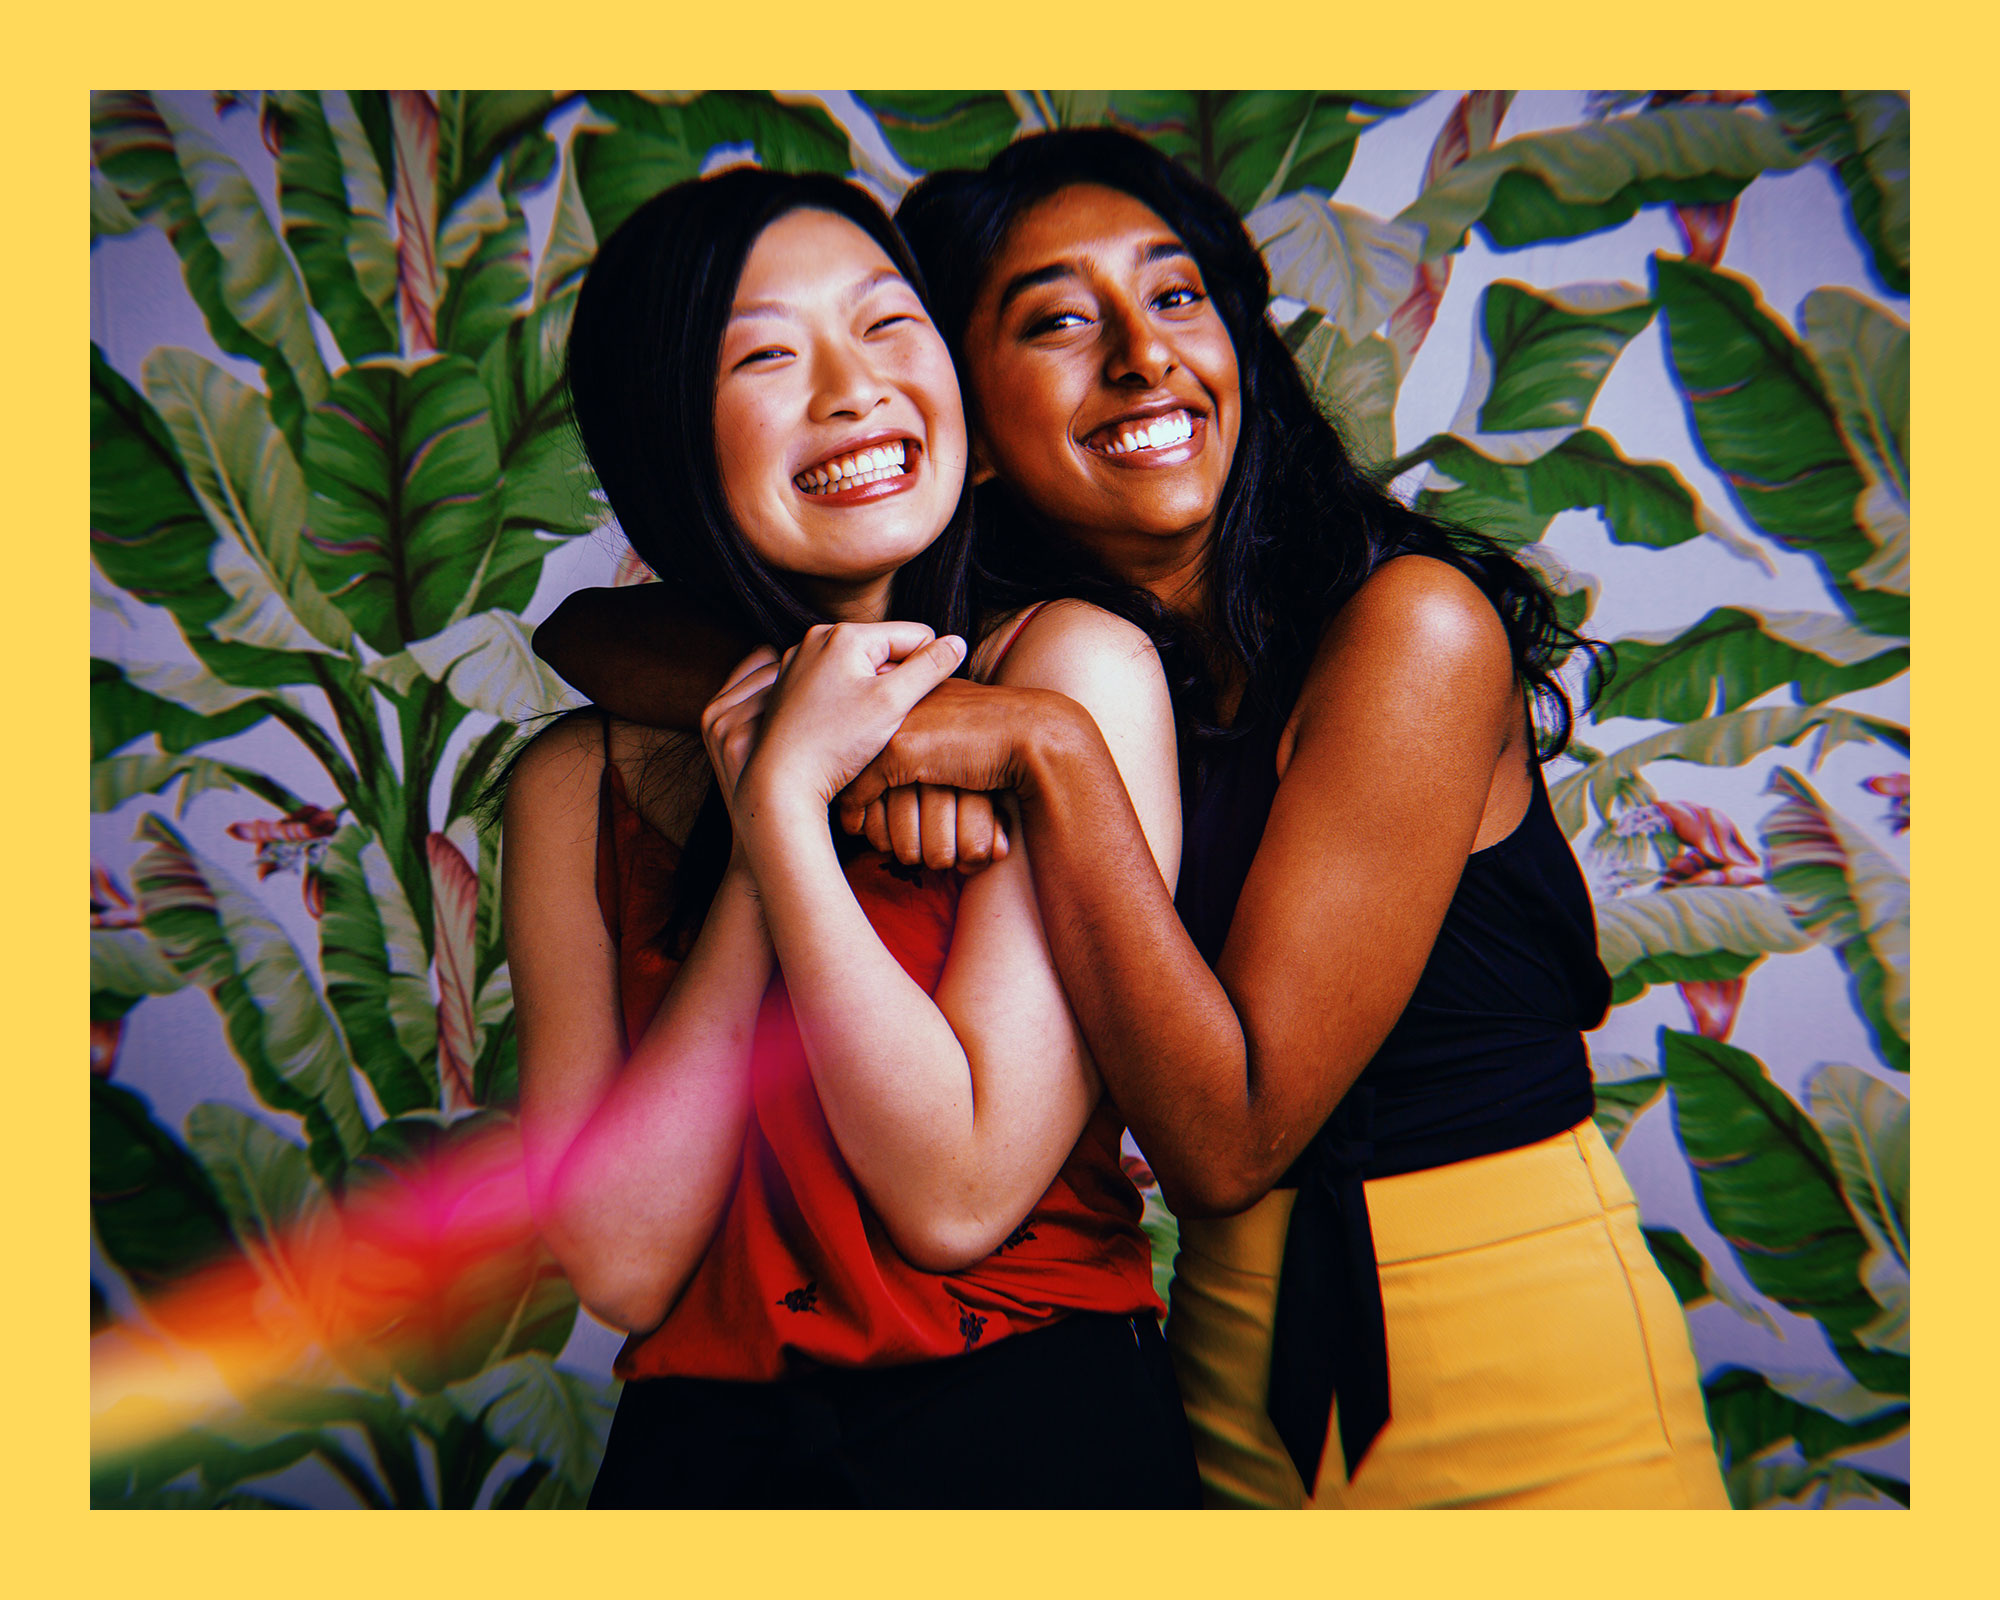 photo of two Asian women in a side-by-side embrace, smiling in front of a palm leaf-patterned wall